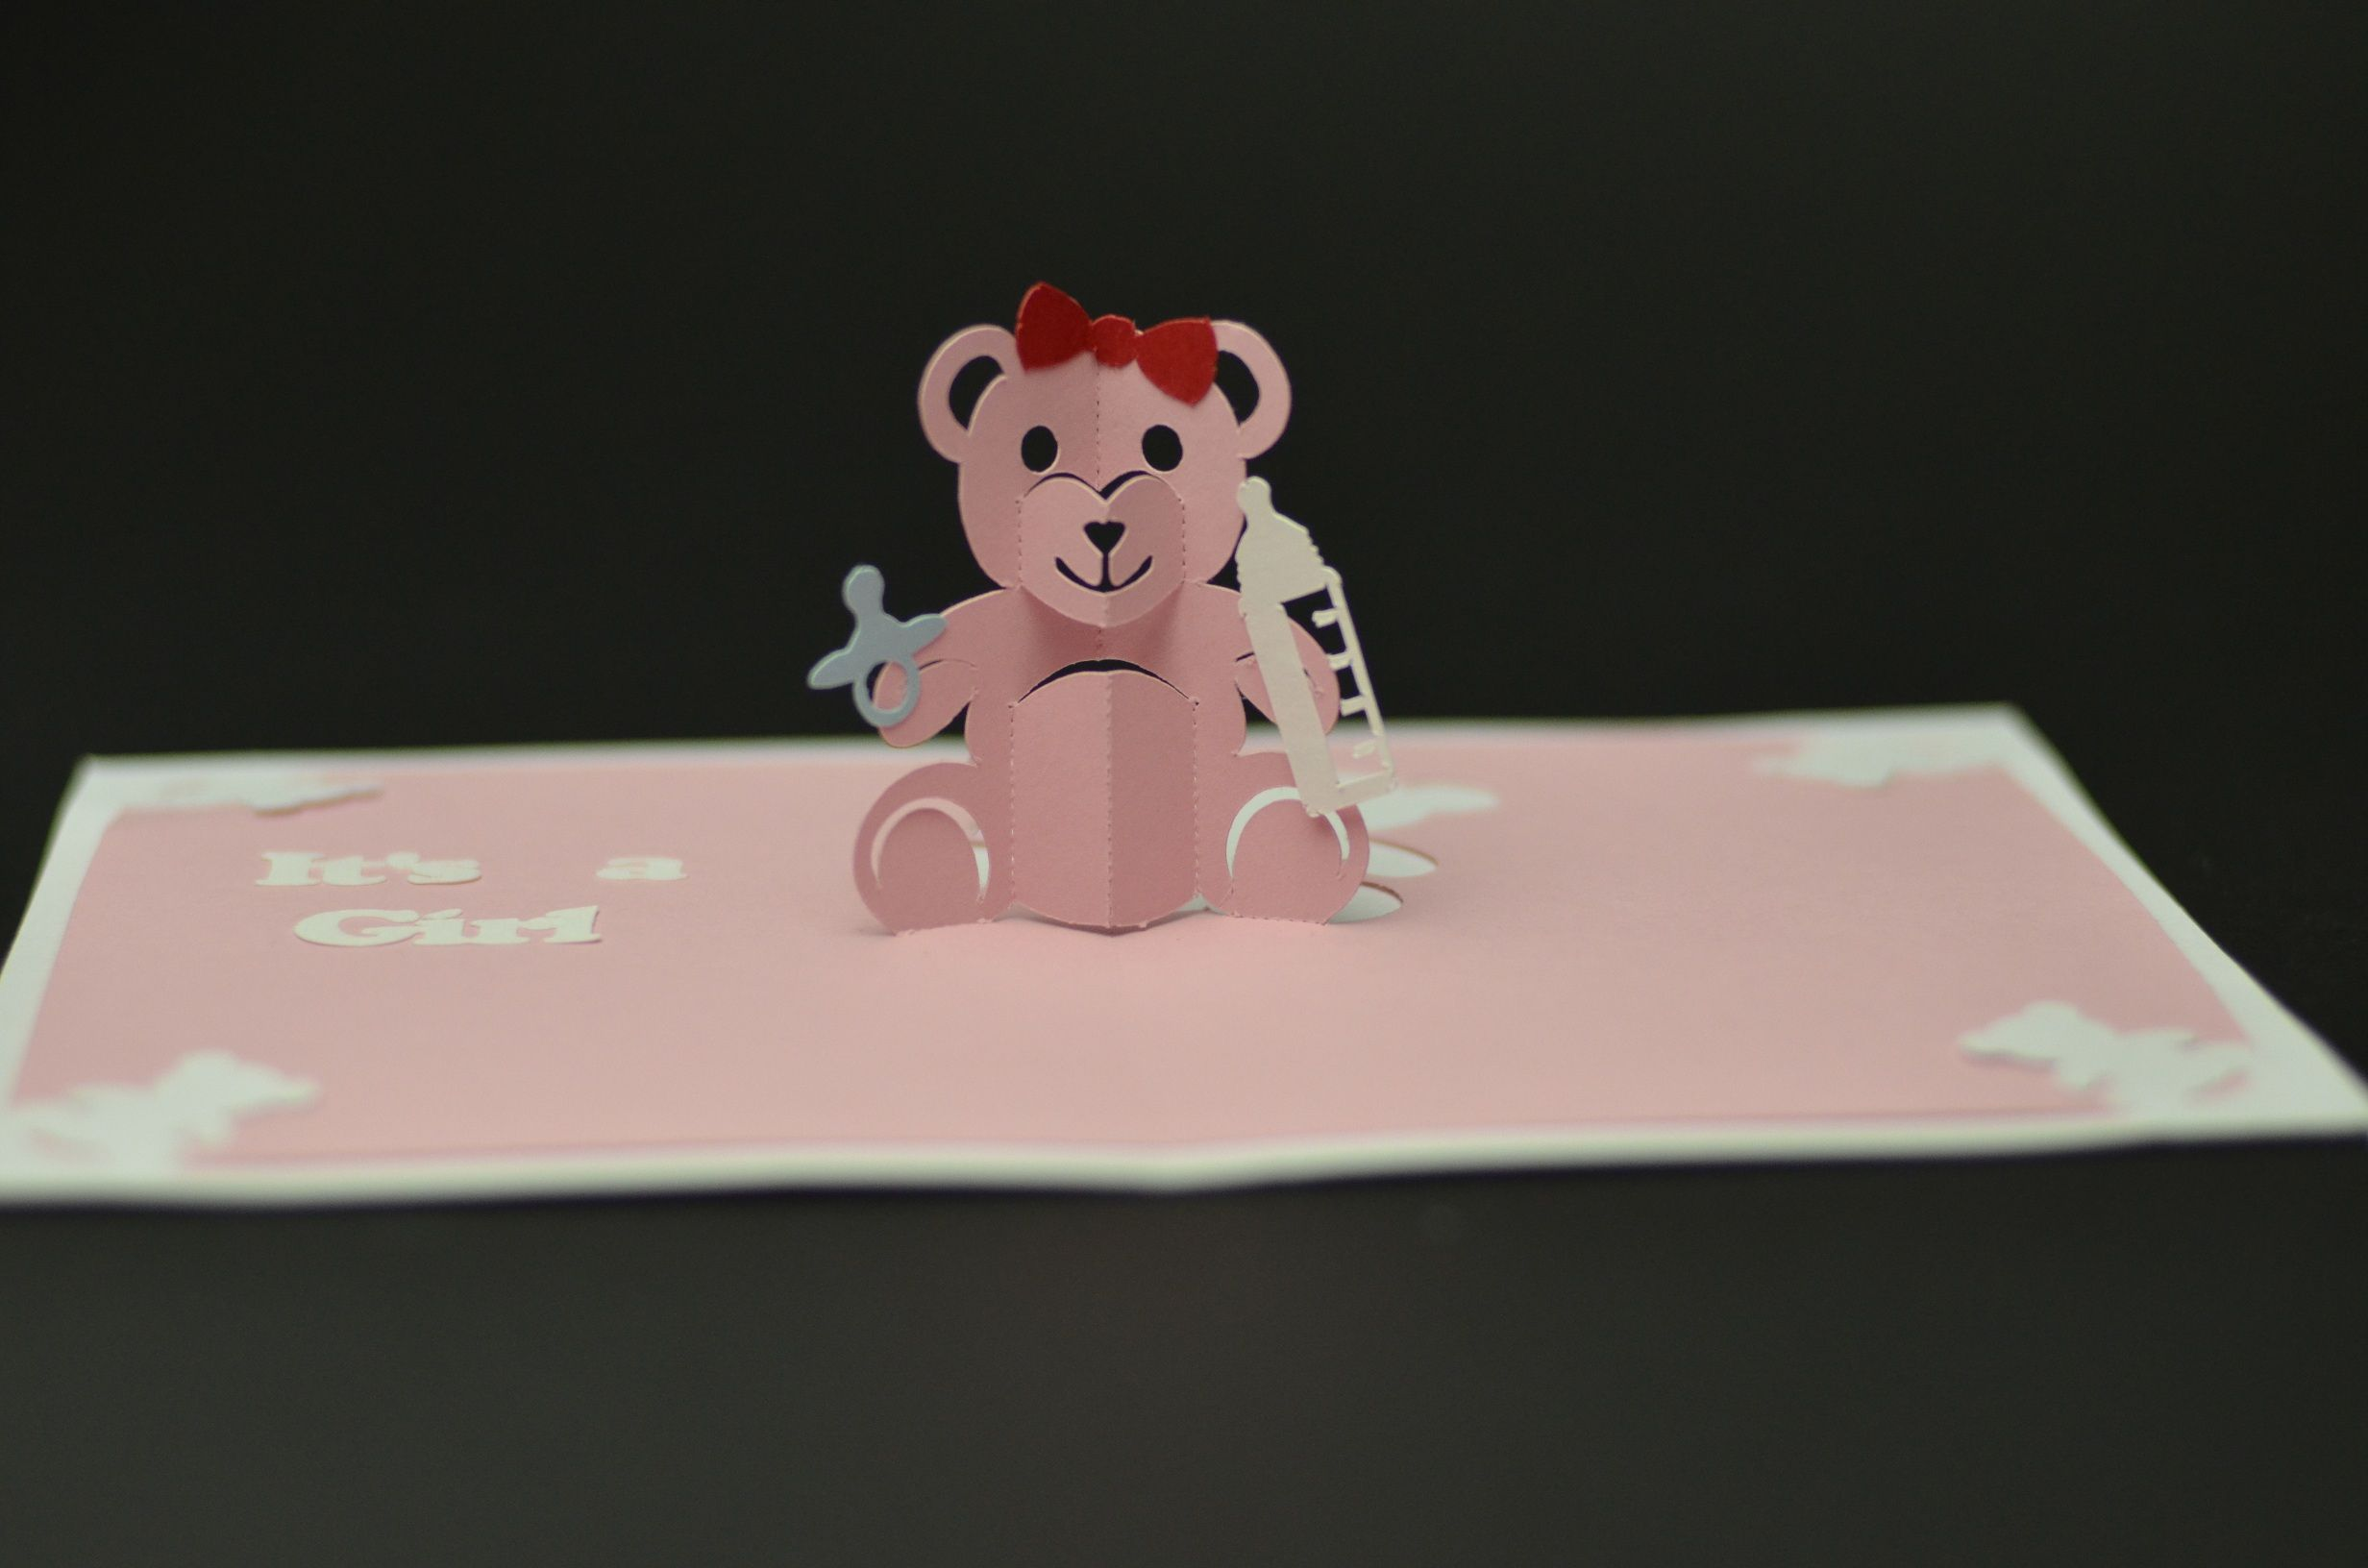 Teddy Bear Pop Up Card Tutorial And Template Creative Pop Inside Teddy Bear Pop Up Pop Up Card Templates Birthday Card Printable Birthday Card Template Free